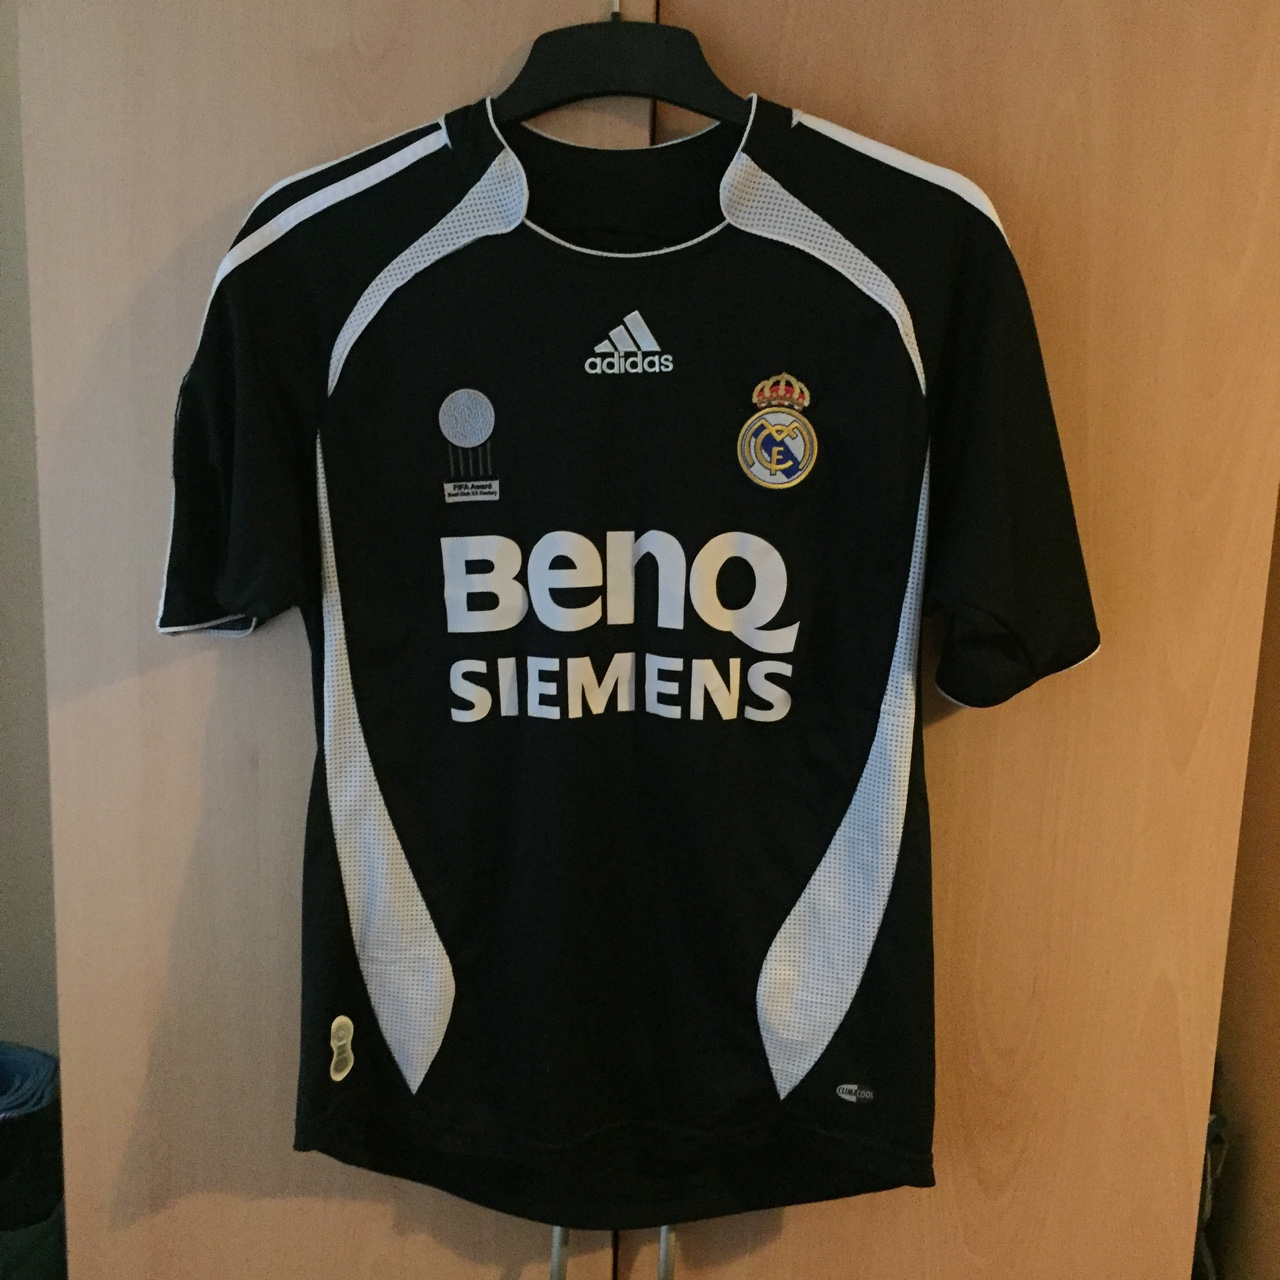 huge selection of bf134 78725 Real Madrid 06-07 away shirt Size: XL Boys (fits a... - Depop